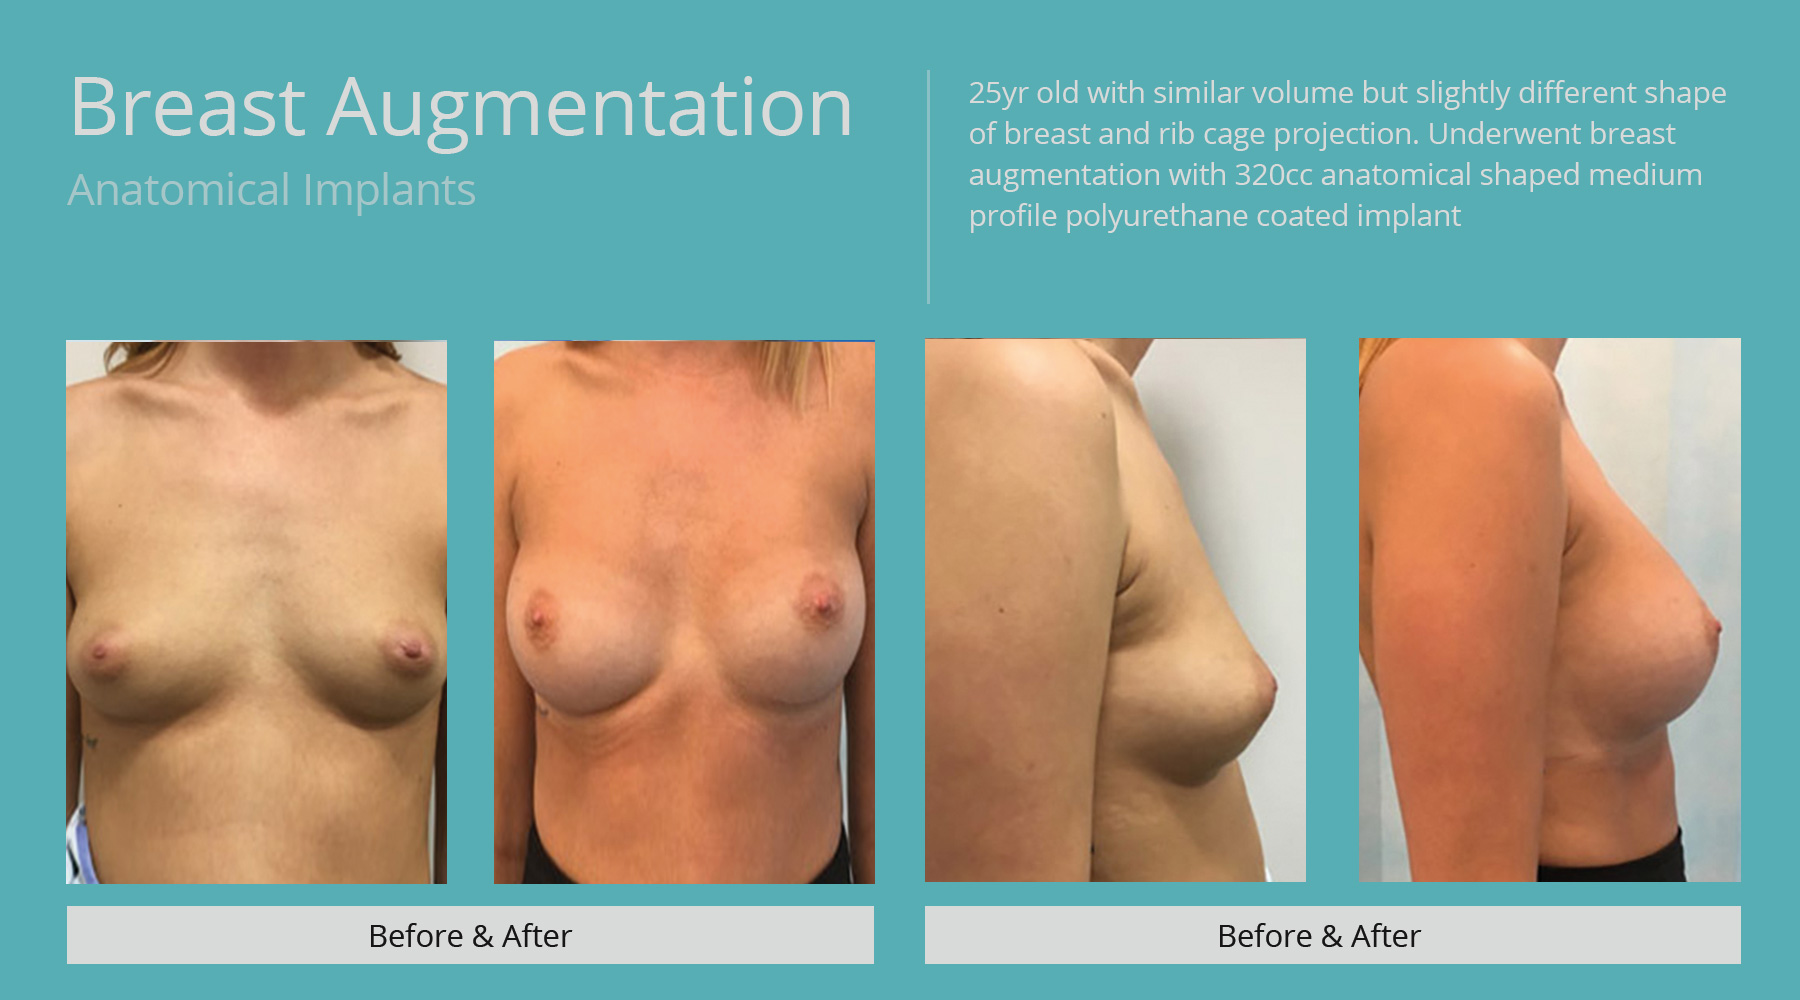 Breast-Augmentation-anatomical-19